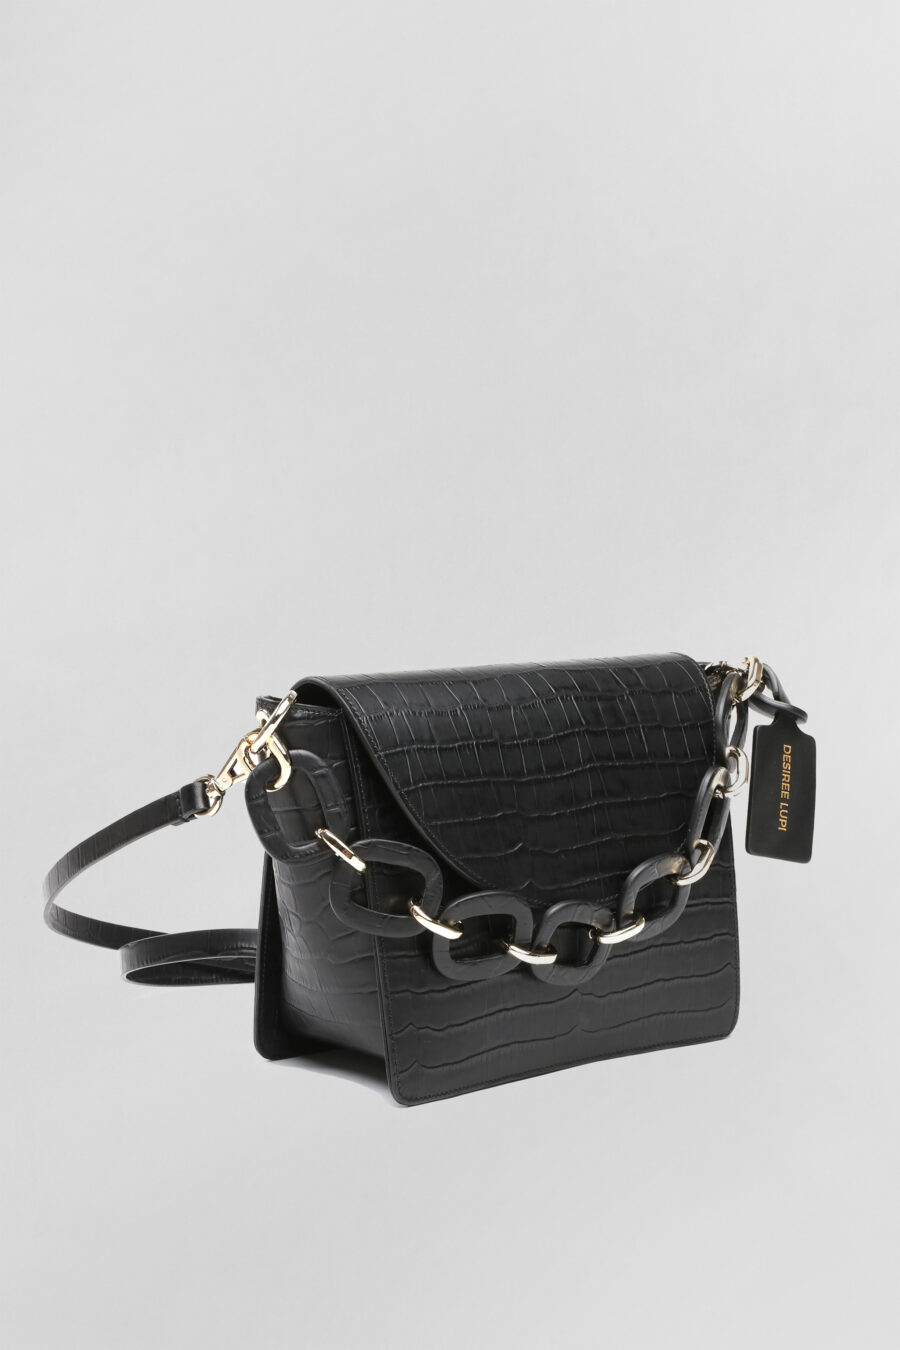 City bag Katy in pelle nera 2